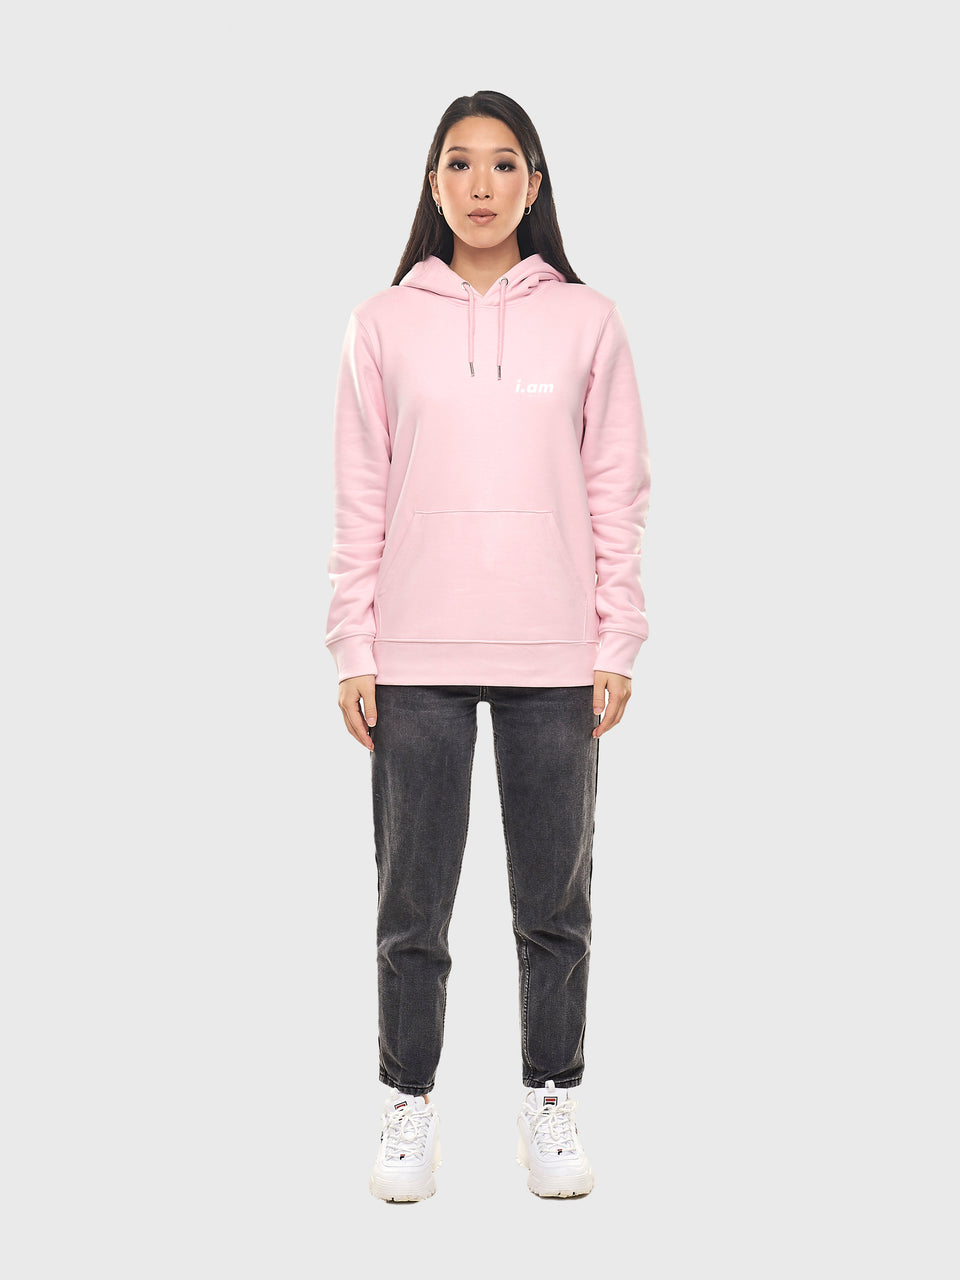 Making it - Pink - Unisex pull over hoodie